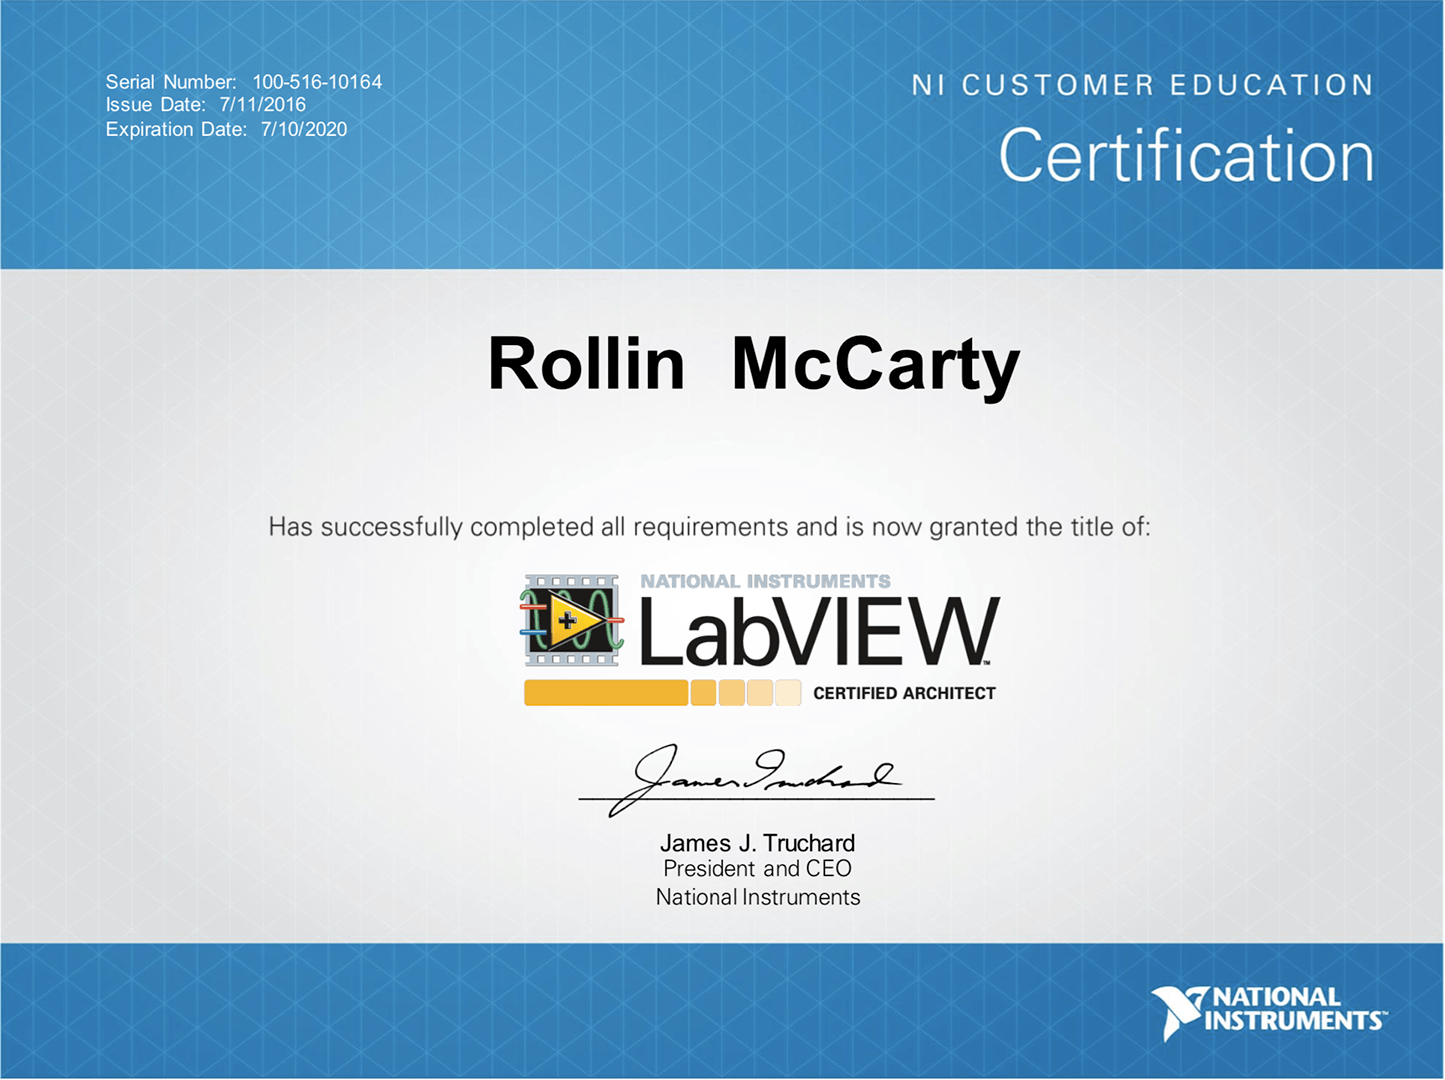 Rollin McCarty is a Certified LabVIEW Architect (CLA).  The NI LabVIEW programming language is a must when it comes to writing code that communicates with any kind of Instrument over any protocol.  Although it is easy to prototype a VI (i.e. Virtual Instrument i.e. small LabVIEW program) and establish basic communication with your instrument, more elaborate software engineering best practices knowledge is required to properly create a professional test/control application that aggregates multiple instruments/controls.  When hiring a LabVIEW Engineer, the employer could give candidate a LabVIEW programming test, or take their word for that they are competent in LabVIEW (risky, many years of LabVIEW experience doesn't necessarily mean candidate is efficient nor doing things the correct way), or much better you could just simply require that they be certified.  Hiring a certified professional is a must, because it shows the individual is serious about their trade, and is committed to getting client projects done quickly and correctly.  As a Certified LabVIEW Architect, Rollin McCarty has demonstrated the ability to properly architect the software for controlling complex and large test systems written in the LabVIEW programming language.  Verify:  https://www.youracclaim.com/badges/6c2cd2d7-cd52-40cf-8678-58c38fb2e6d1/public_url   Details:  http://sine.ni.com/nips/cds/view/p/lang/en/nid/13477